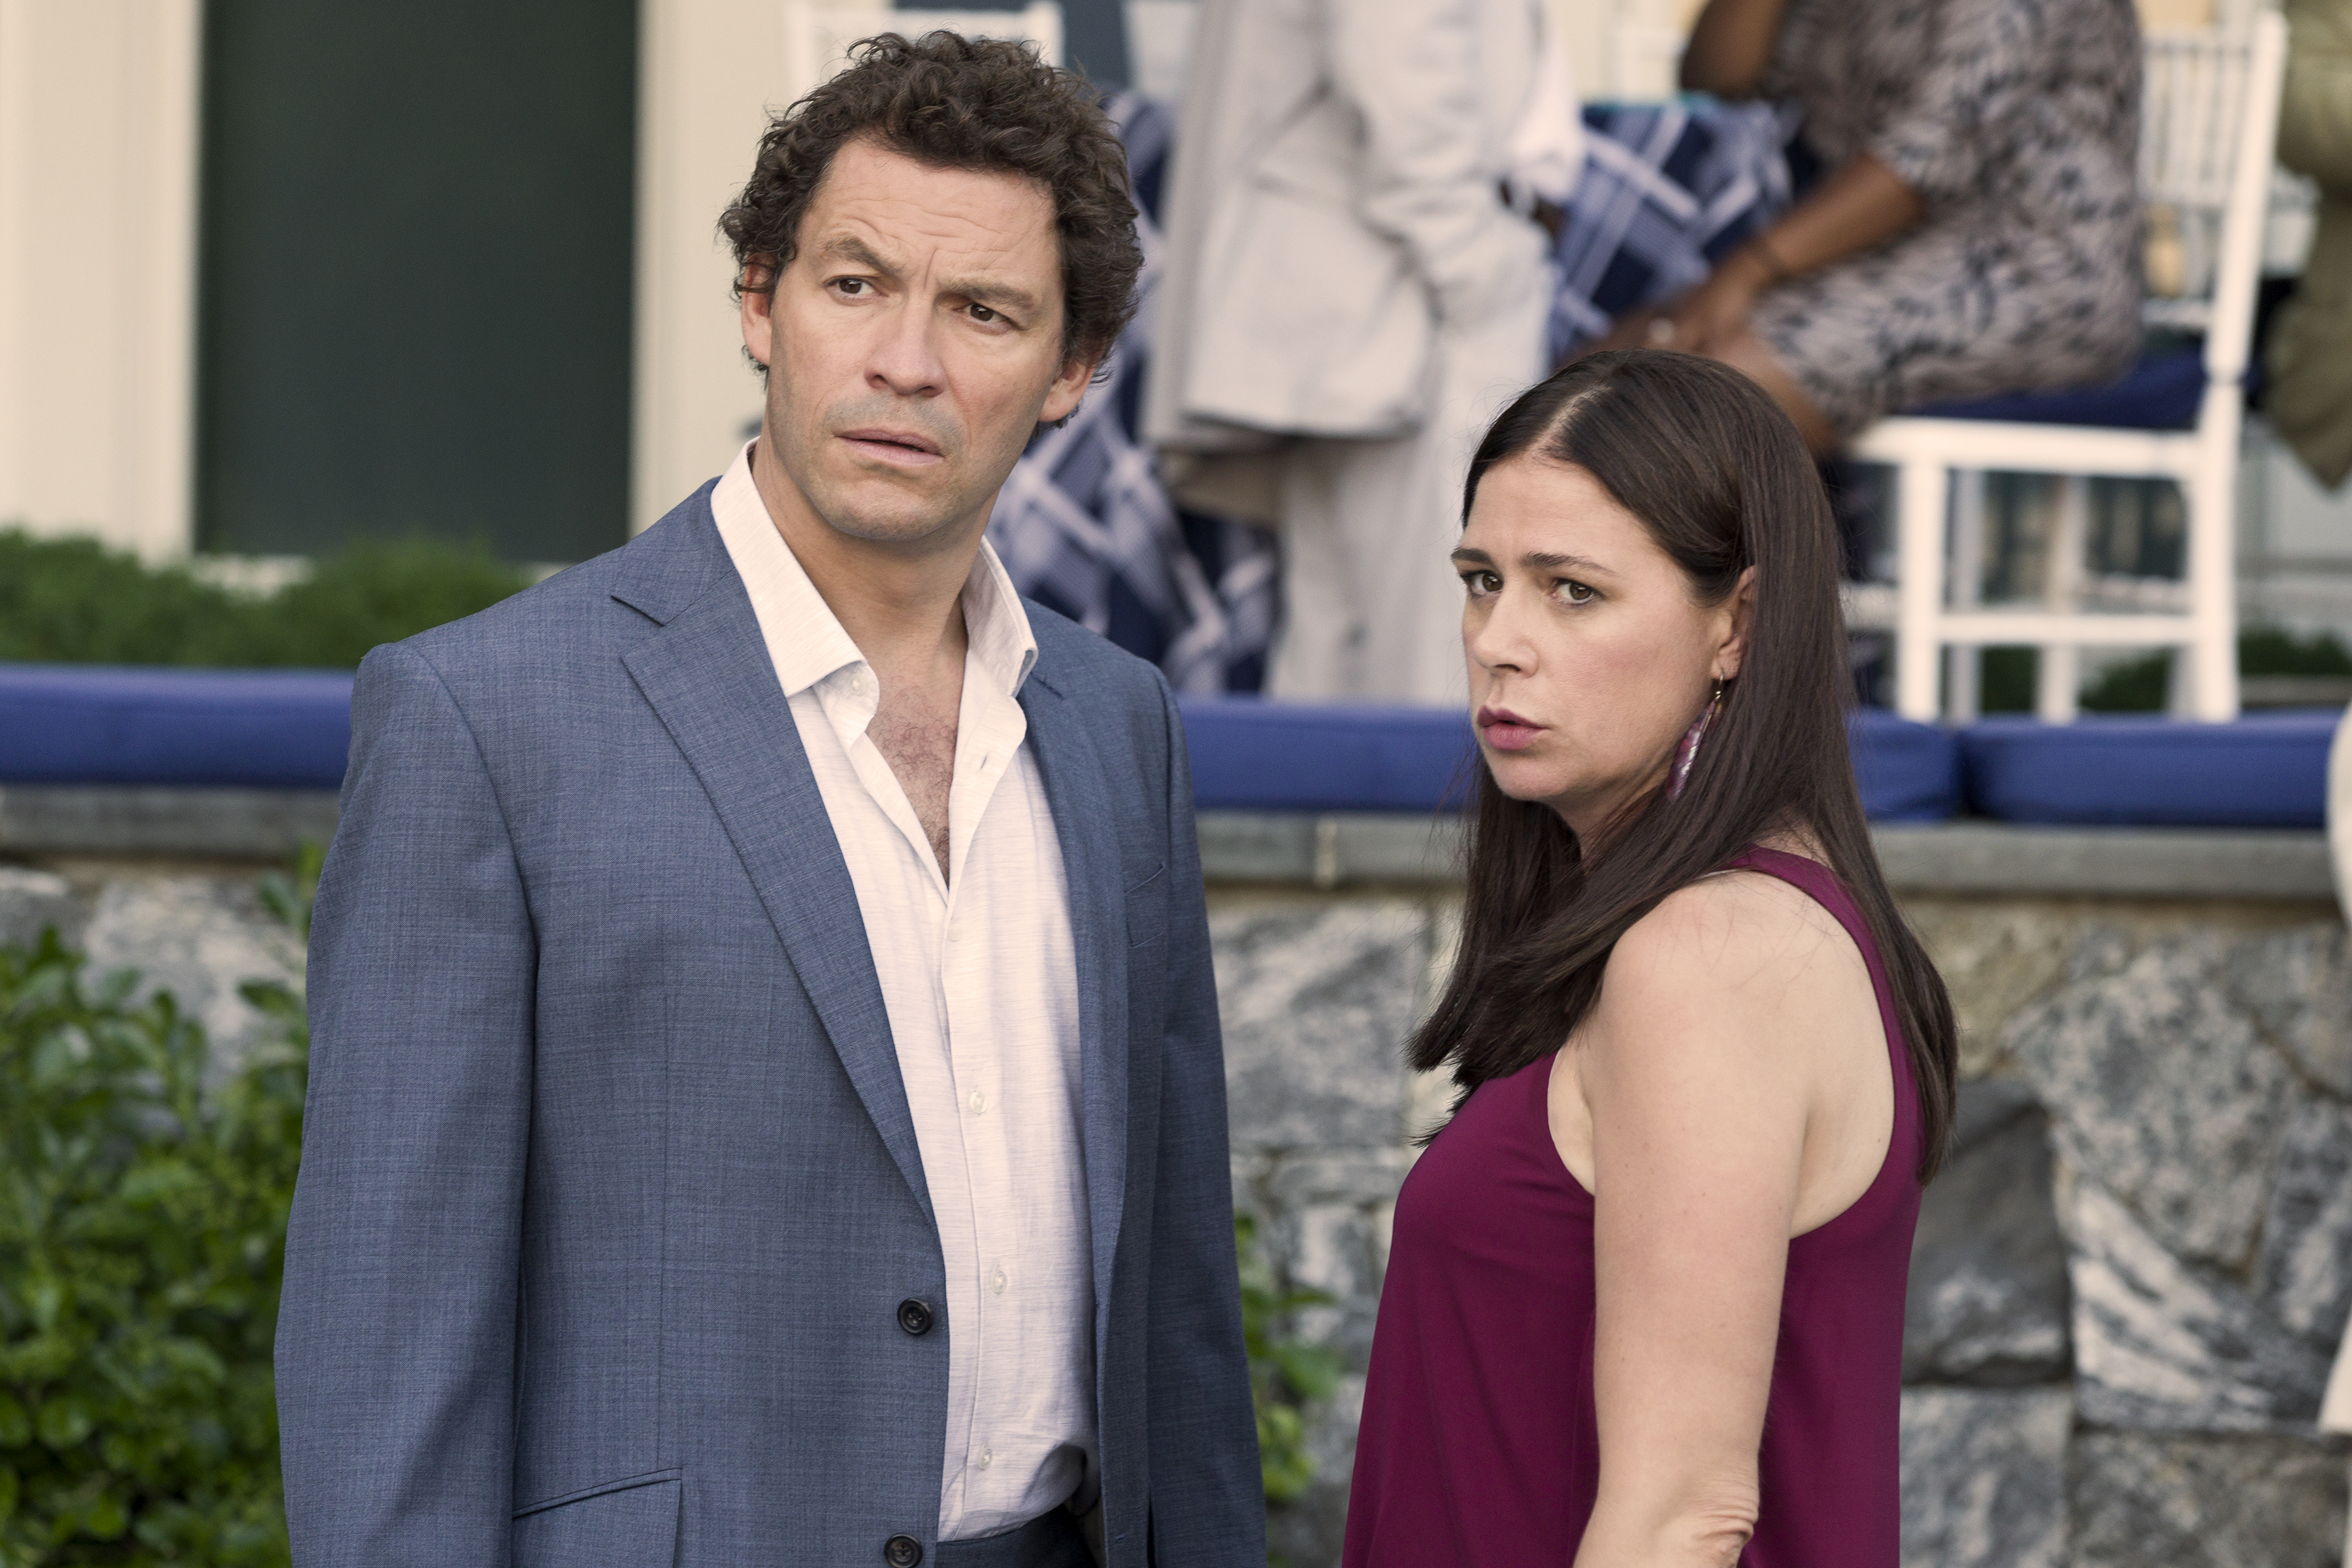 Dominic West as Noah and Maura Tierney as Helen in The Affair (season 1, episode 2). - Photo: Mark Schafer/SHOWTIME - Photo ID:  TheAffair_102_6528